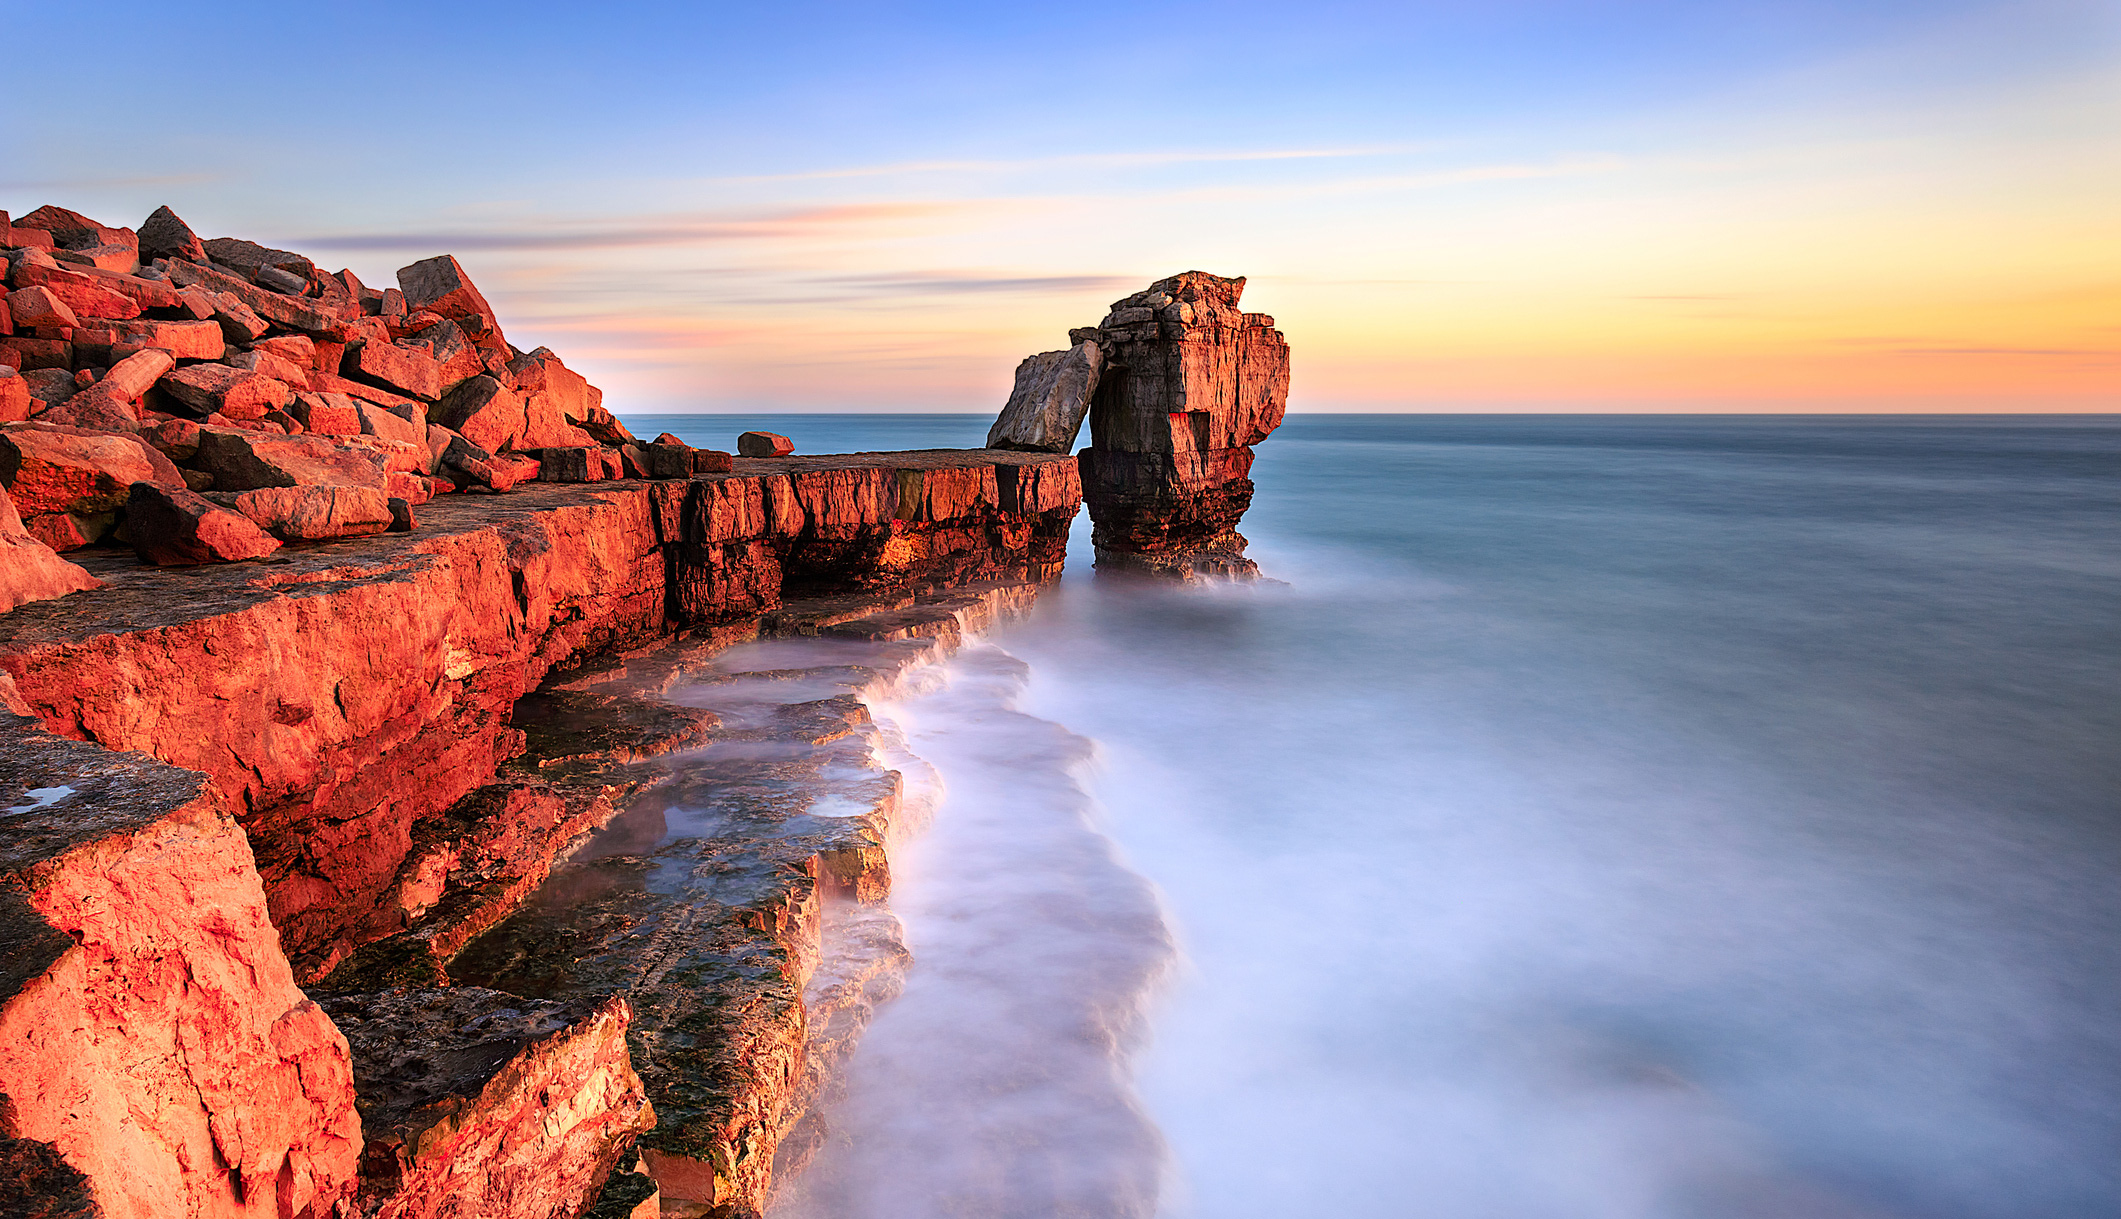 Pulpit Rock at Portland Bill on the South West Coast Path